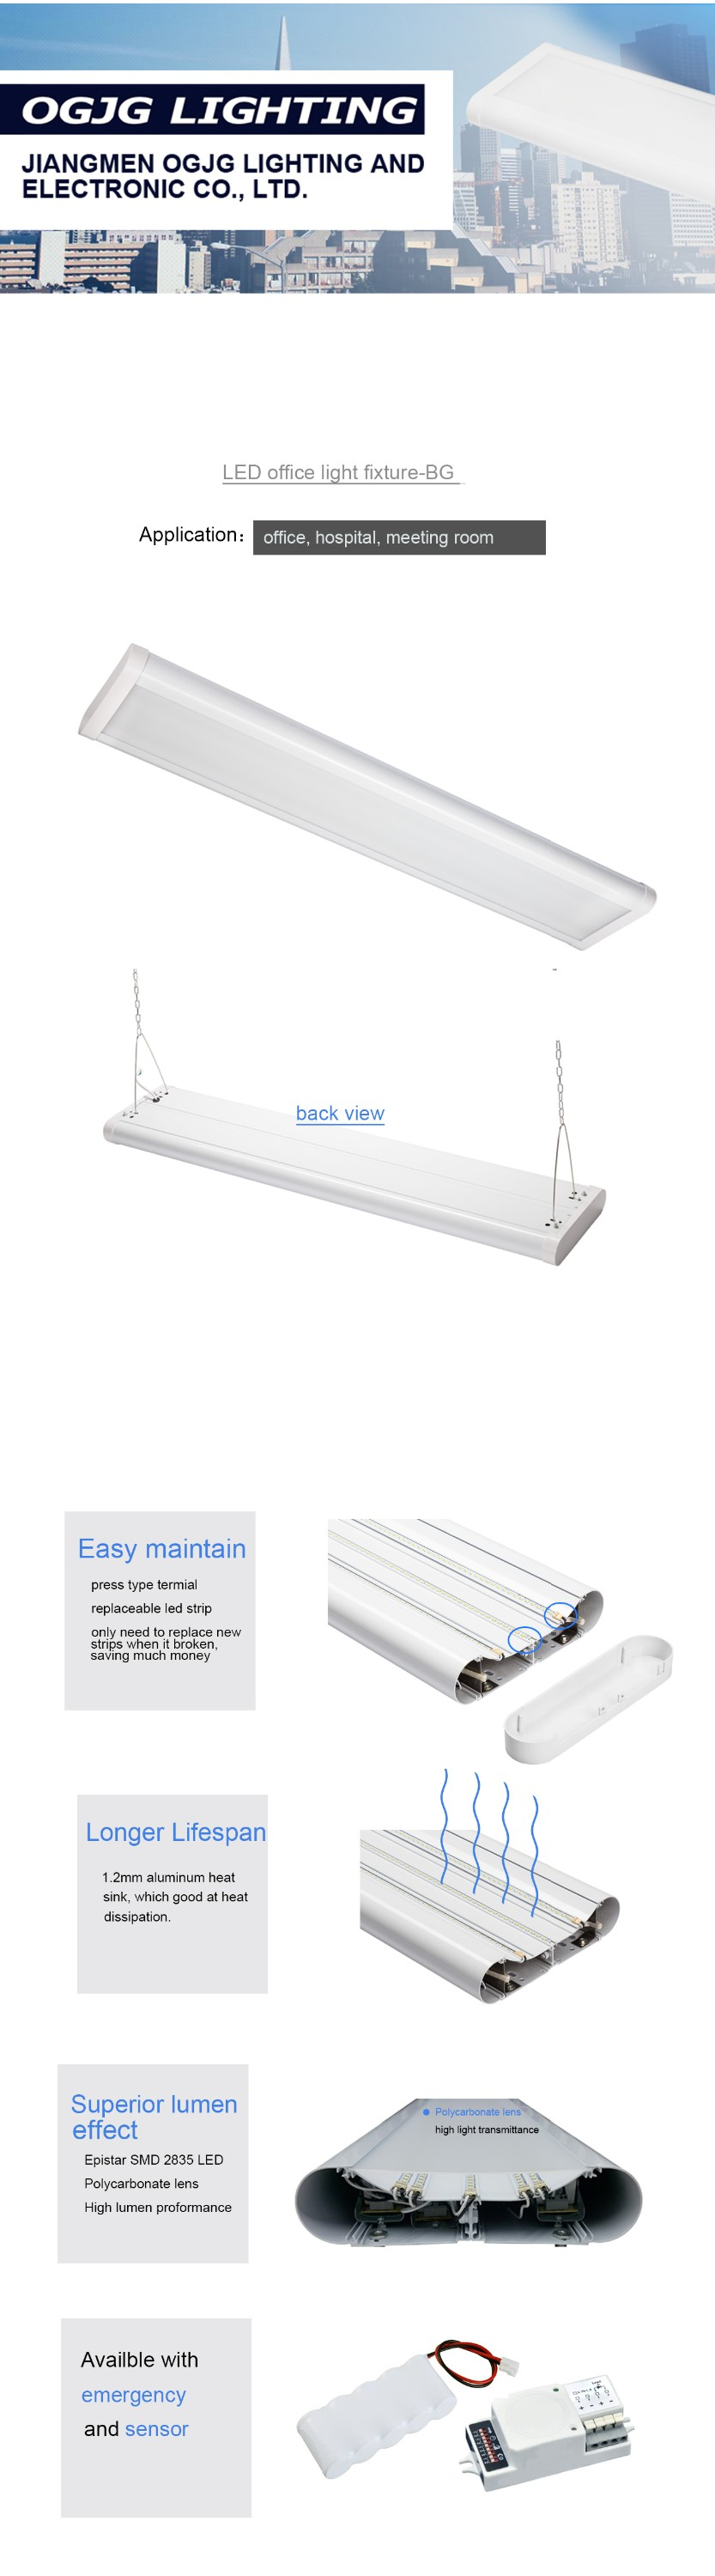 train station emergency pc diffuser pendant light 60w 80w 120w 160w ticket office suspended dimming led linear lighting fixture